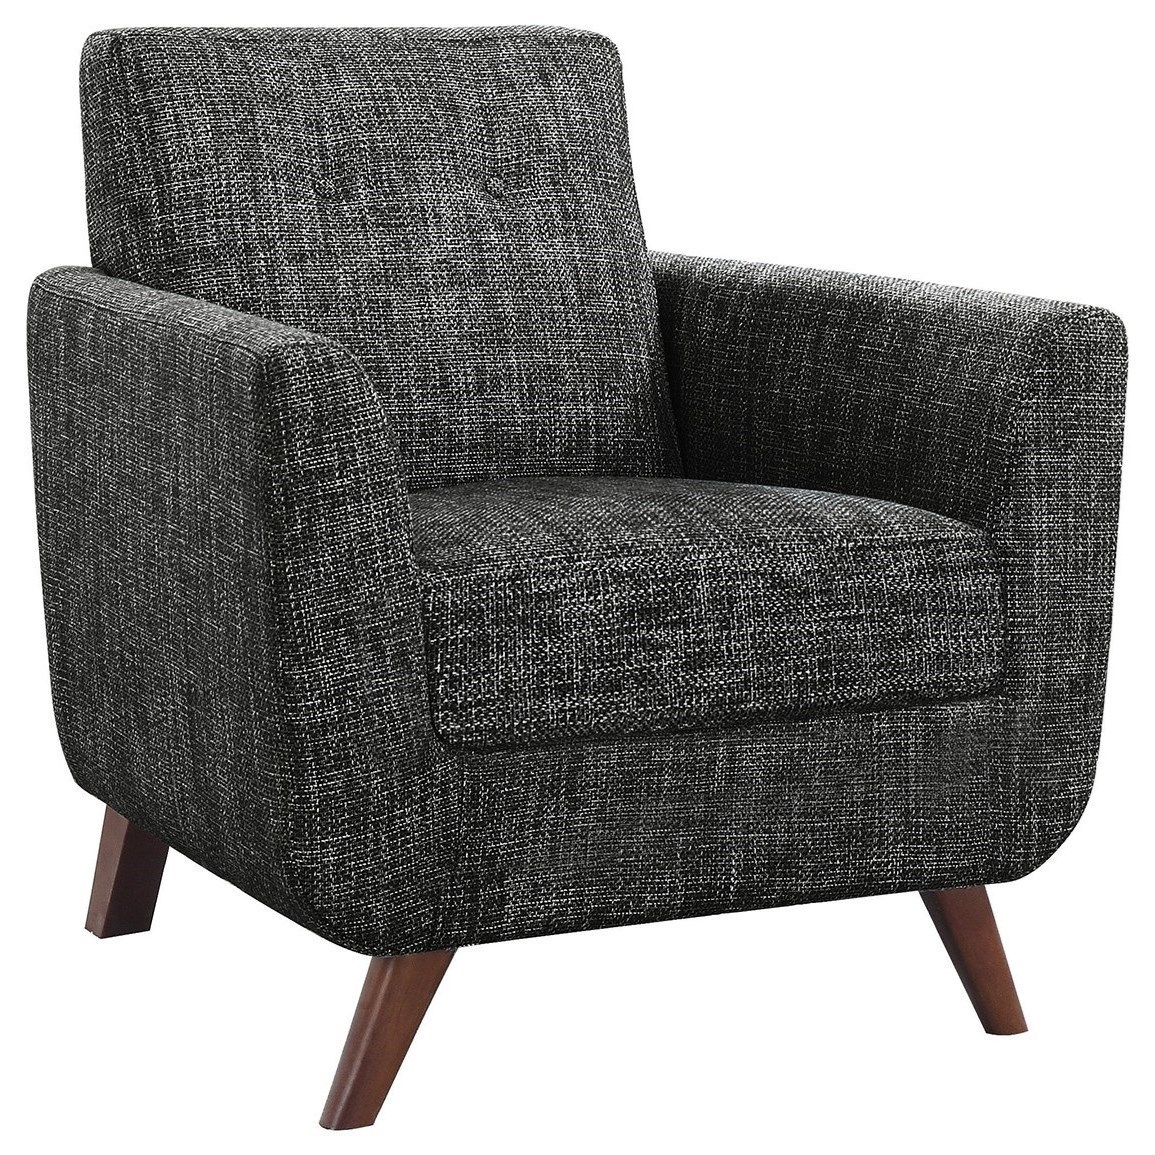 modern accent chairs beach on sale at walmart coaster seating 903134 mid century chair with angled legs dunk bright furniture upholstered